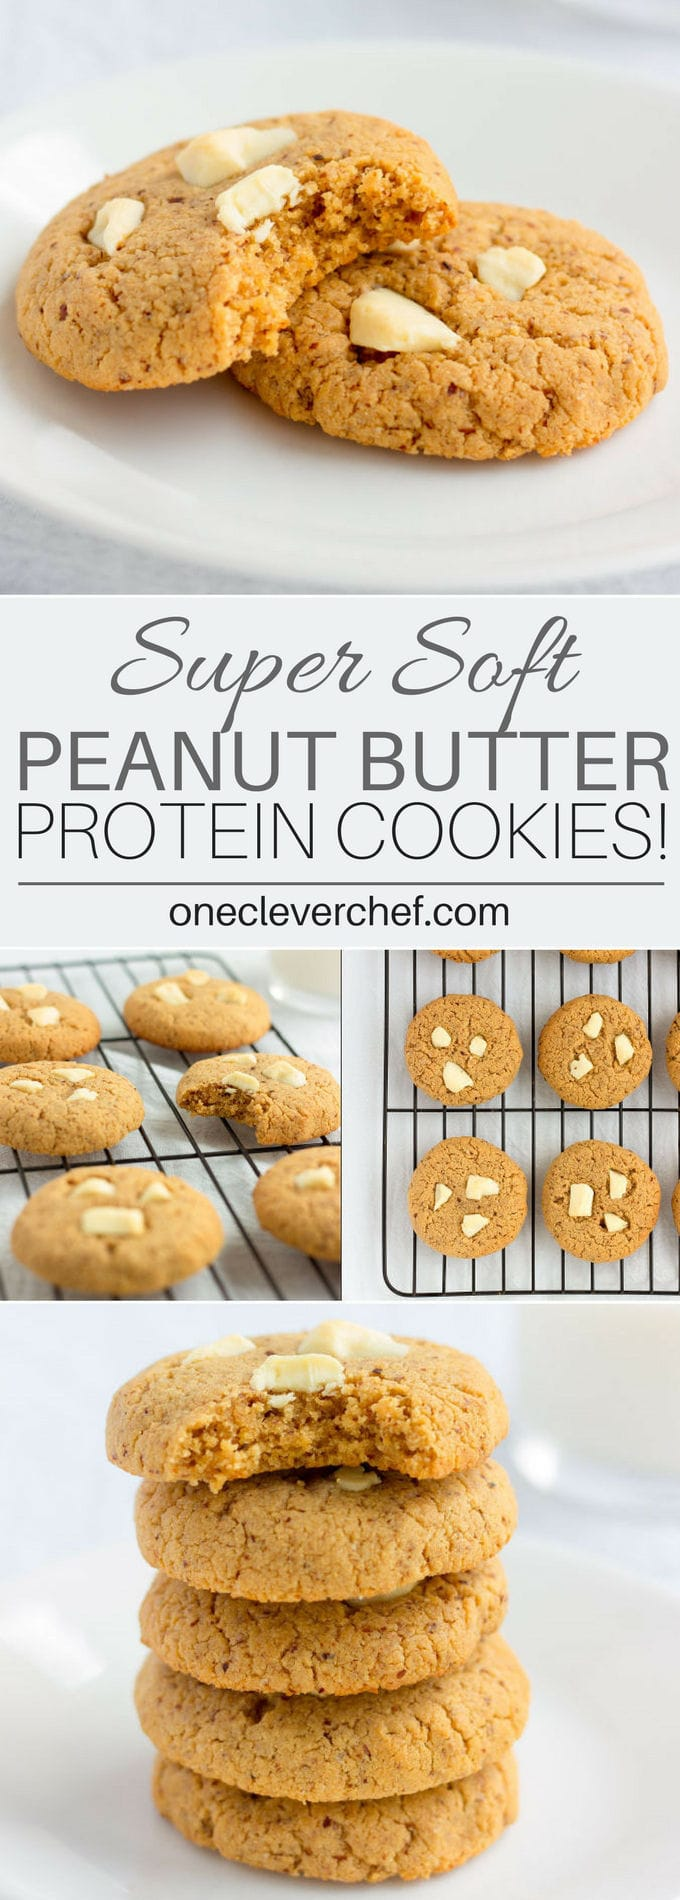 These almond flour & peanut butter protein cookies are my new addiction. Made with only 6 simple ingredients and one bowl, these quick and easy cookies can be whipped up and baked under 20 minutes. Naturally sweetened with coconut sugar, these contain11 grams of protein per cookie and are entirely gluten-free, paleo, dairy-free, refined sugar-free, flourless, grain-free and can easily be made egg-free and vegan by simply replacing the eggs with flax eggs. Sooootasty! | www.onecleverchef.com